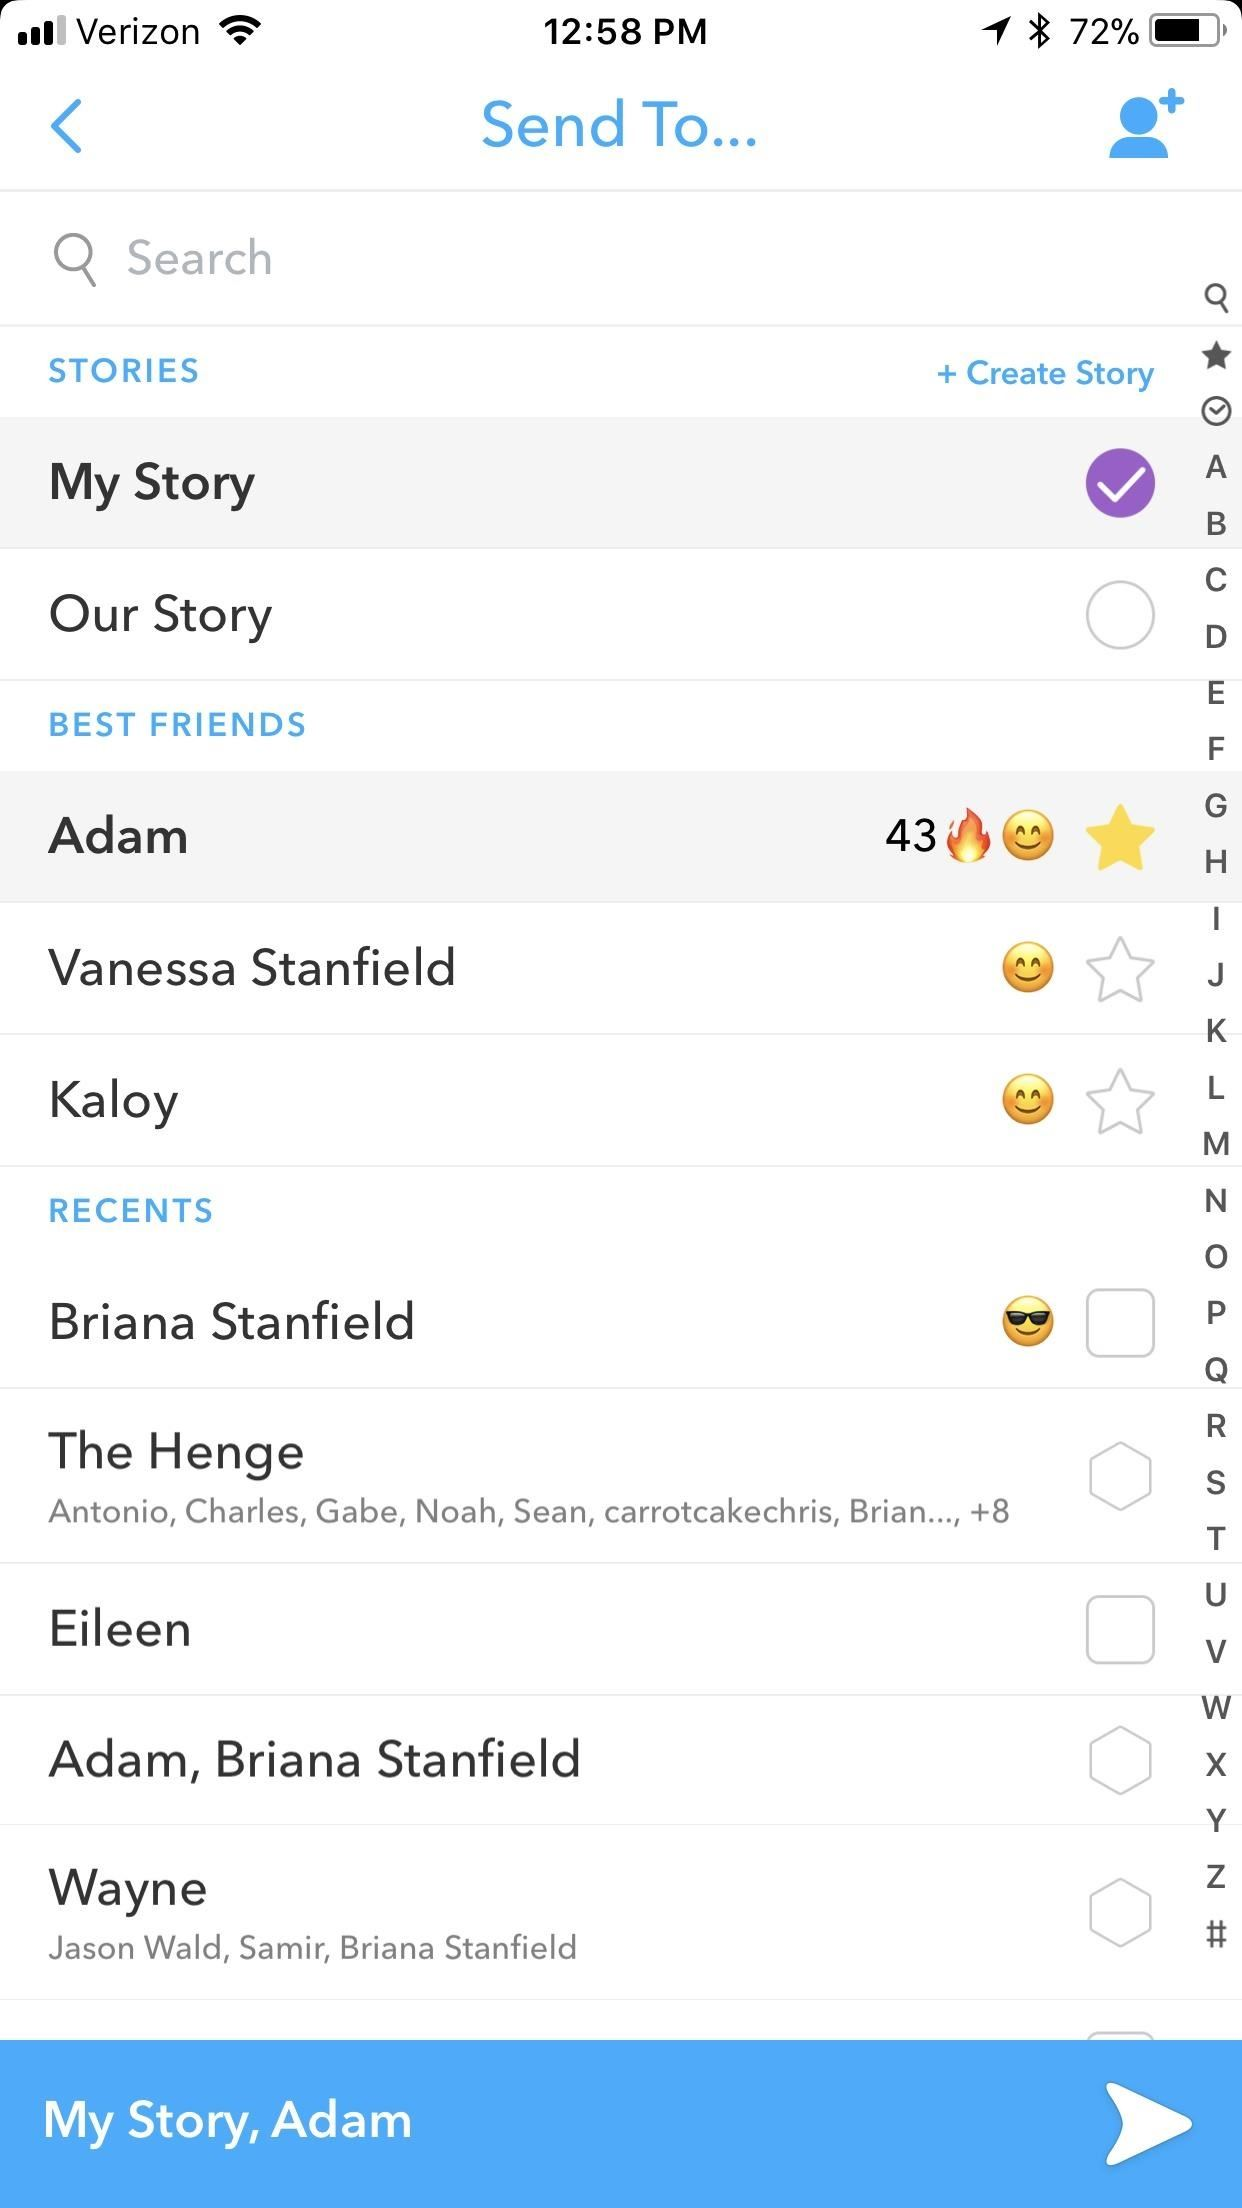 Personalize Your Snapchat Stories with Drawings, Emoji, GIFs & More